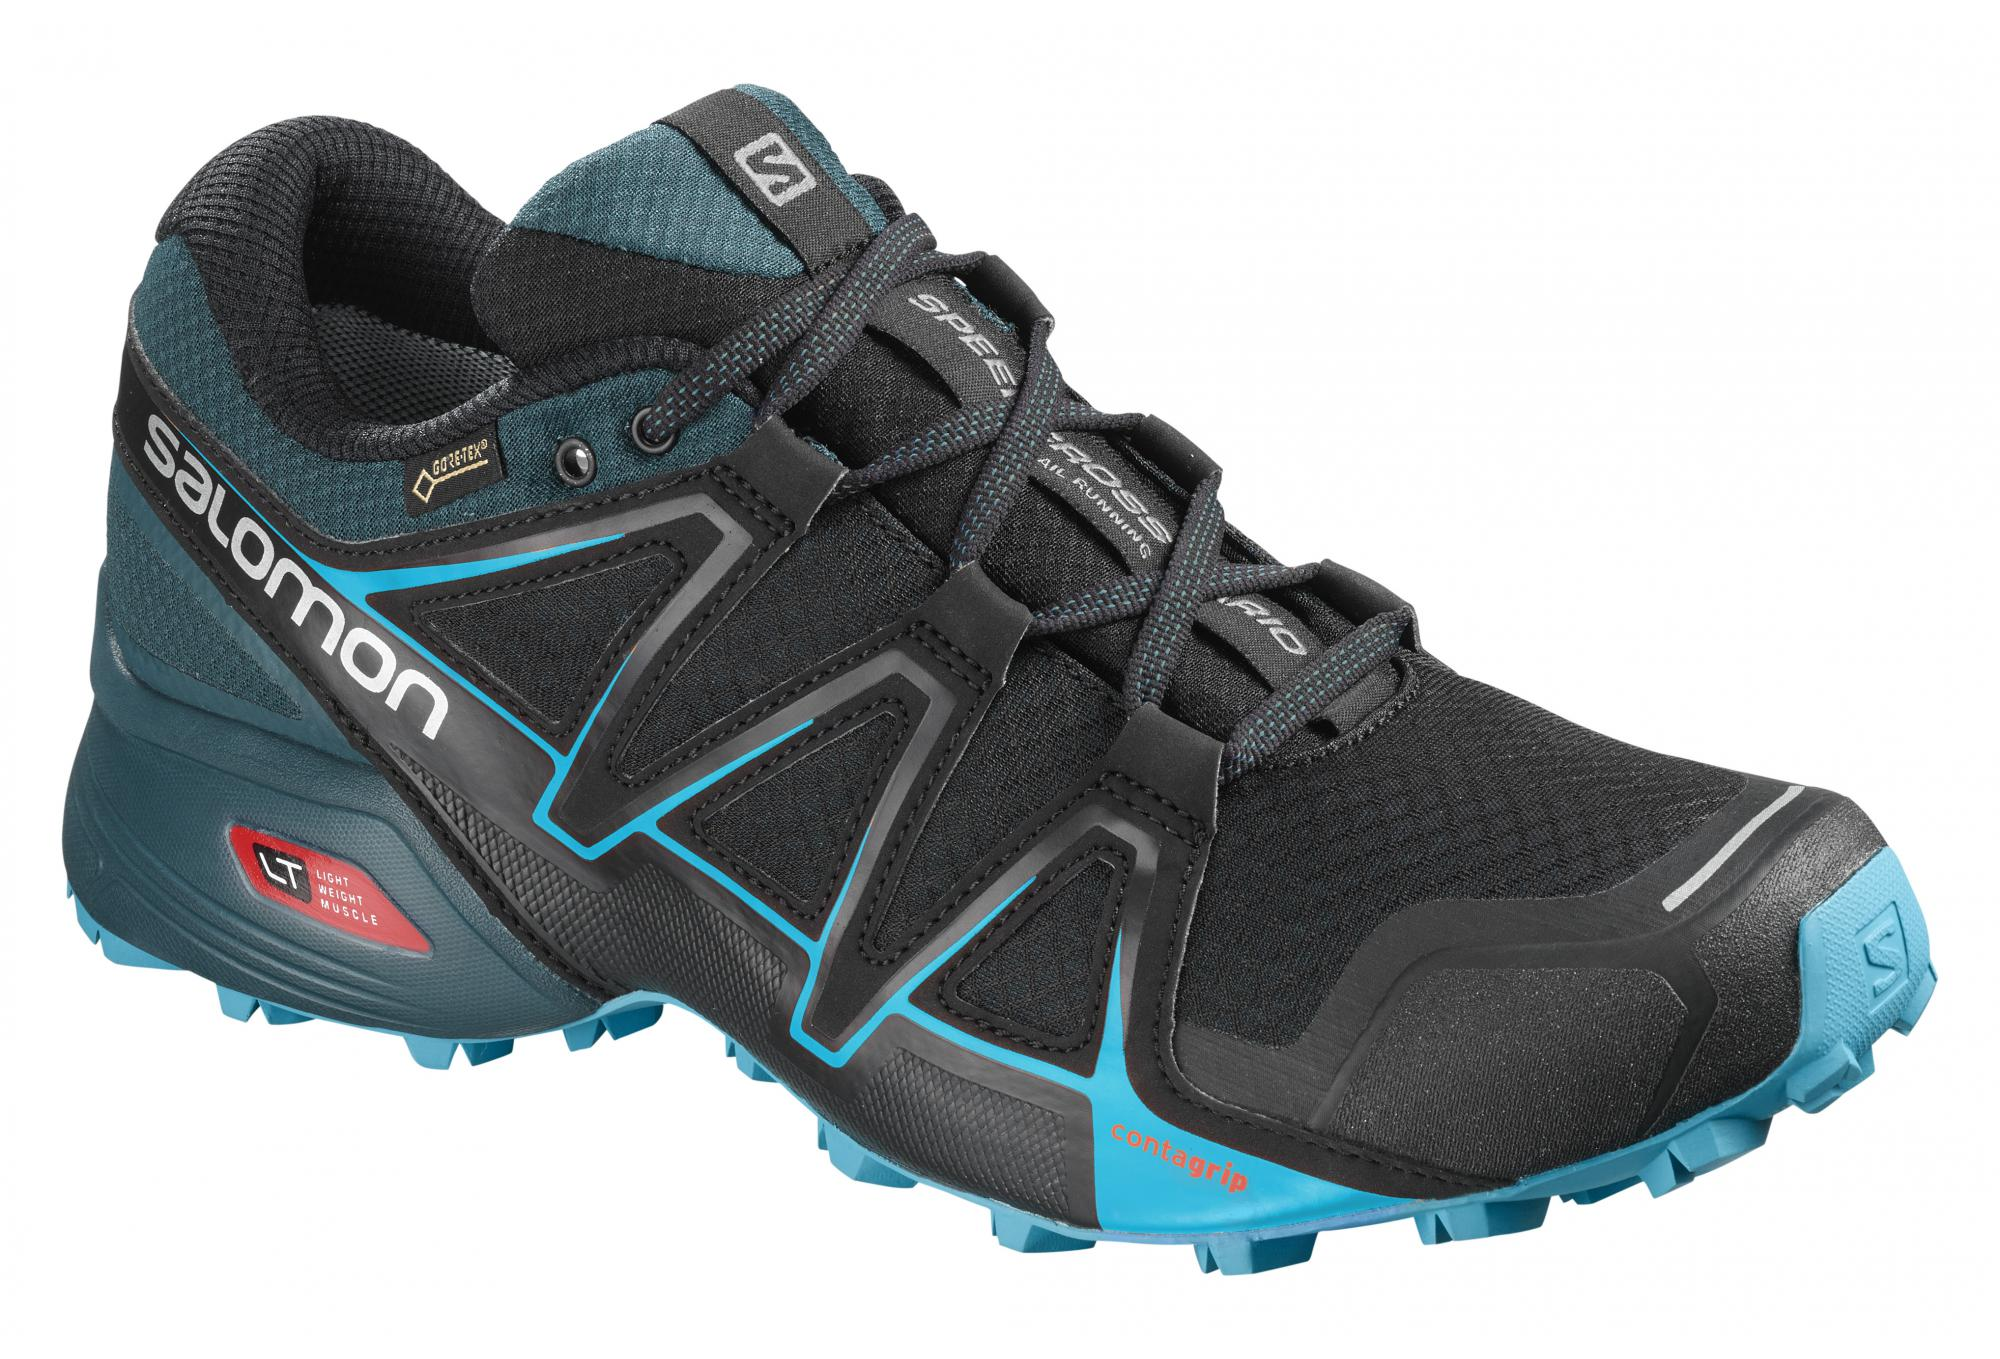 Salomon Speedcross Vario 2 Goretex